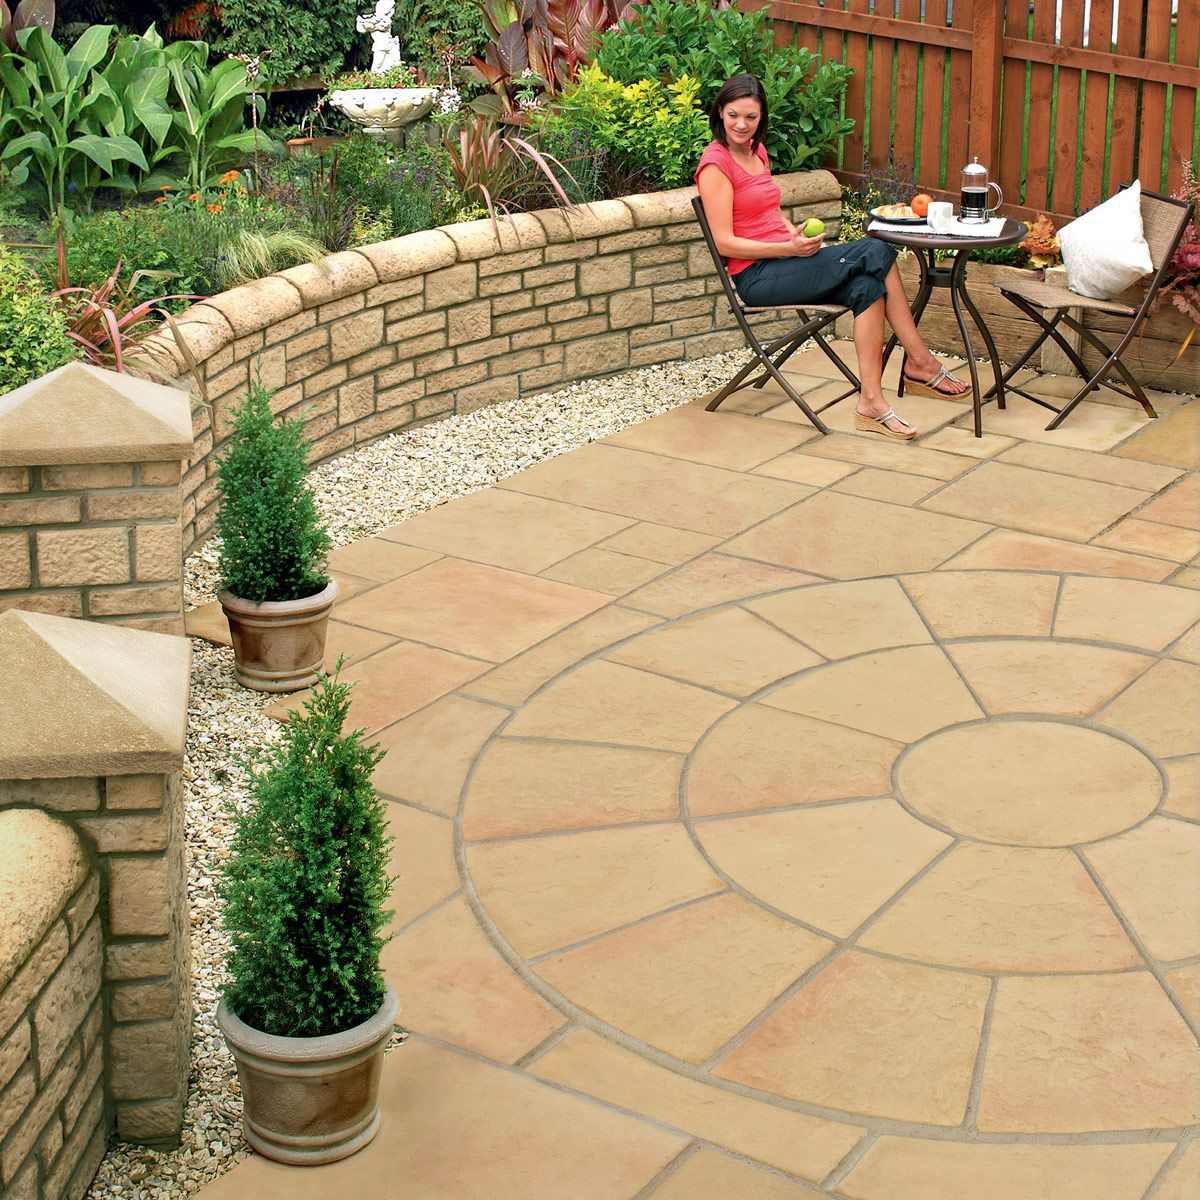 open bricks for driveways - Google Search | Gardening | Pinterest ...